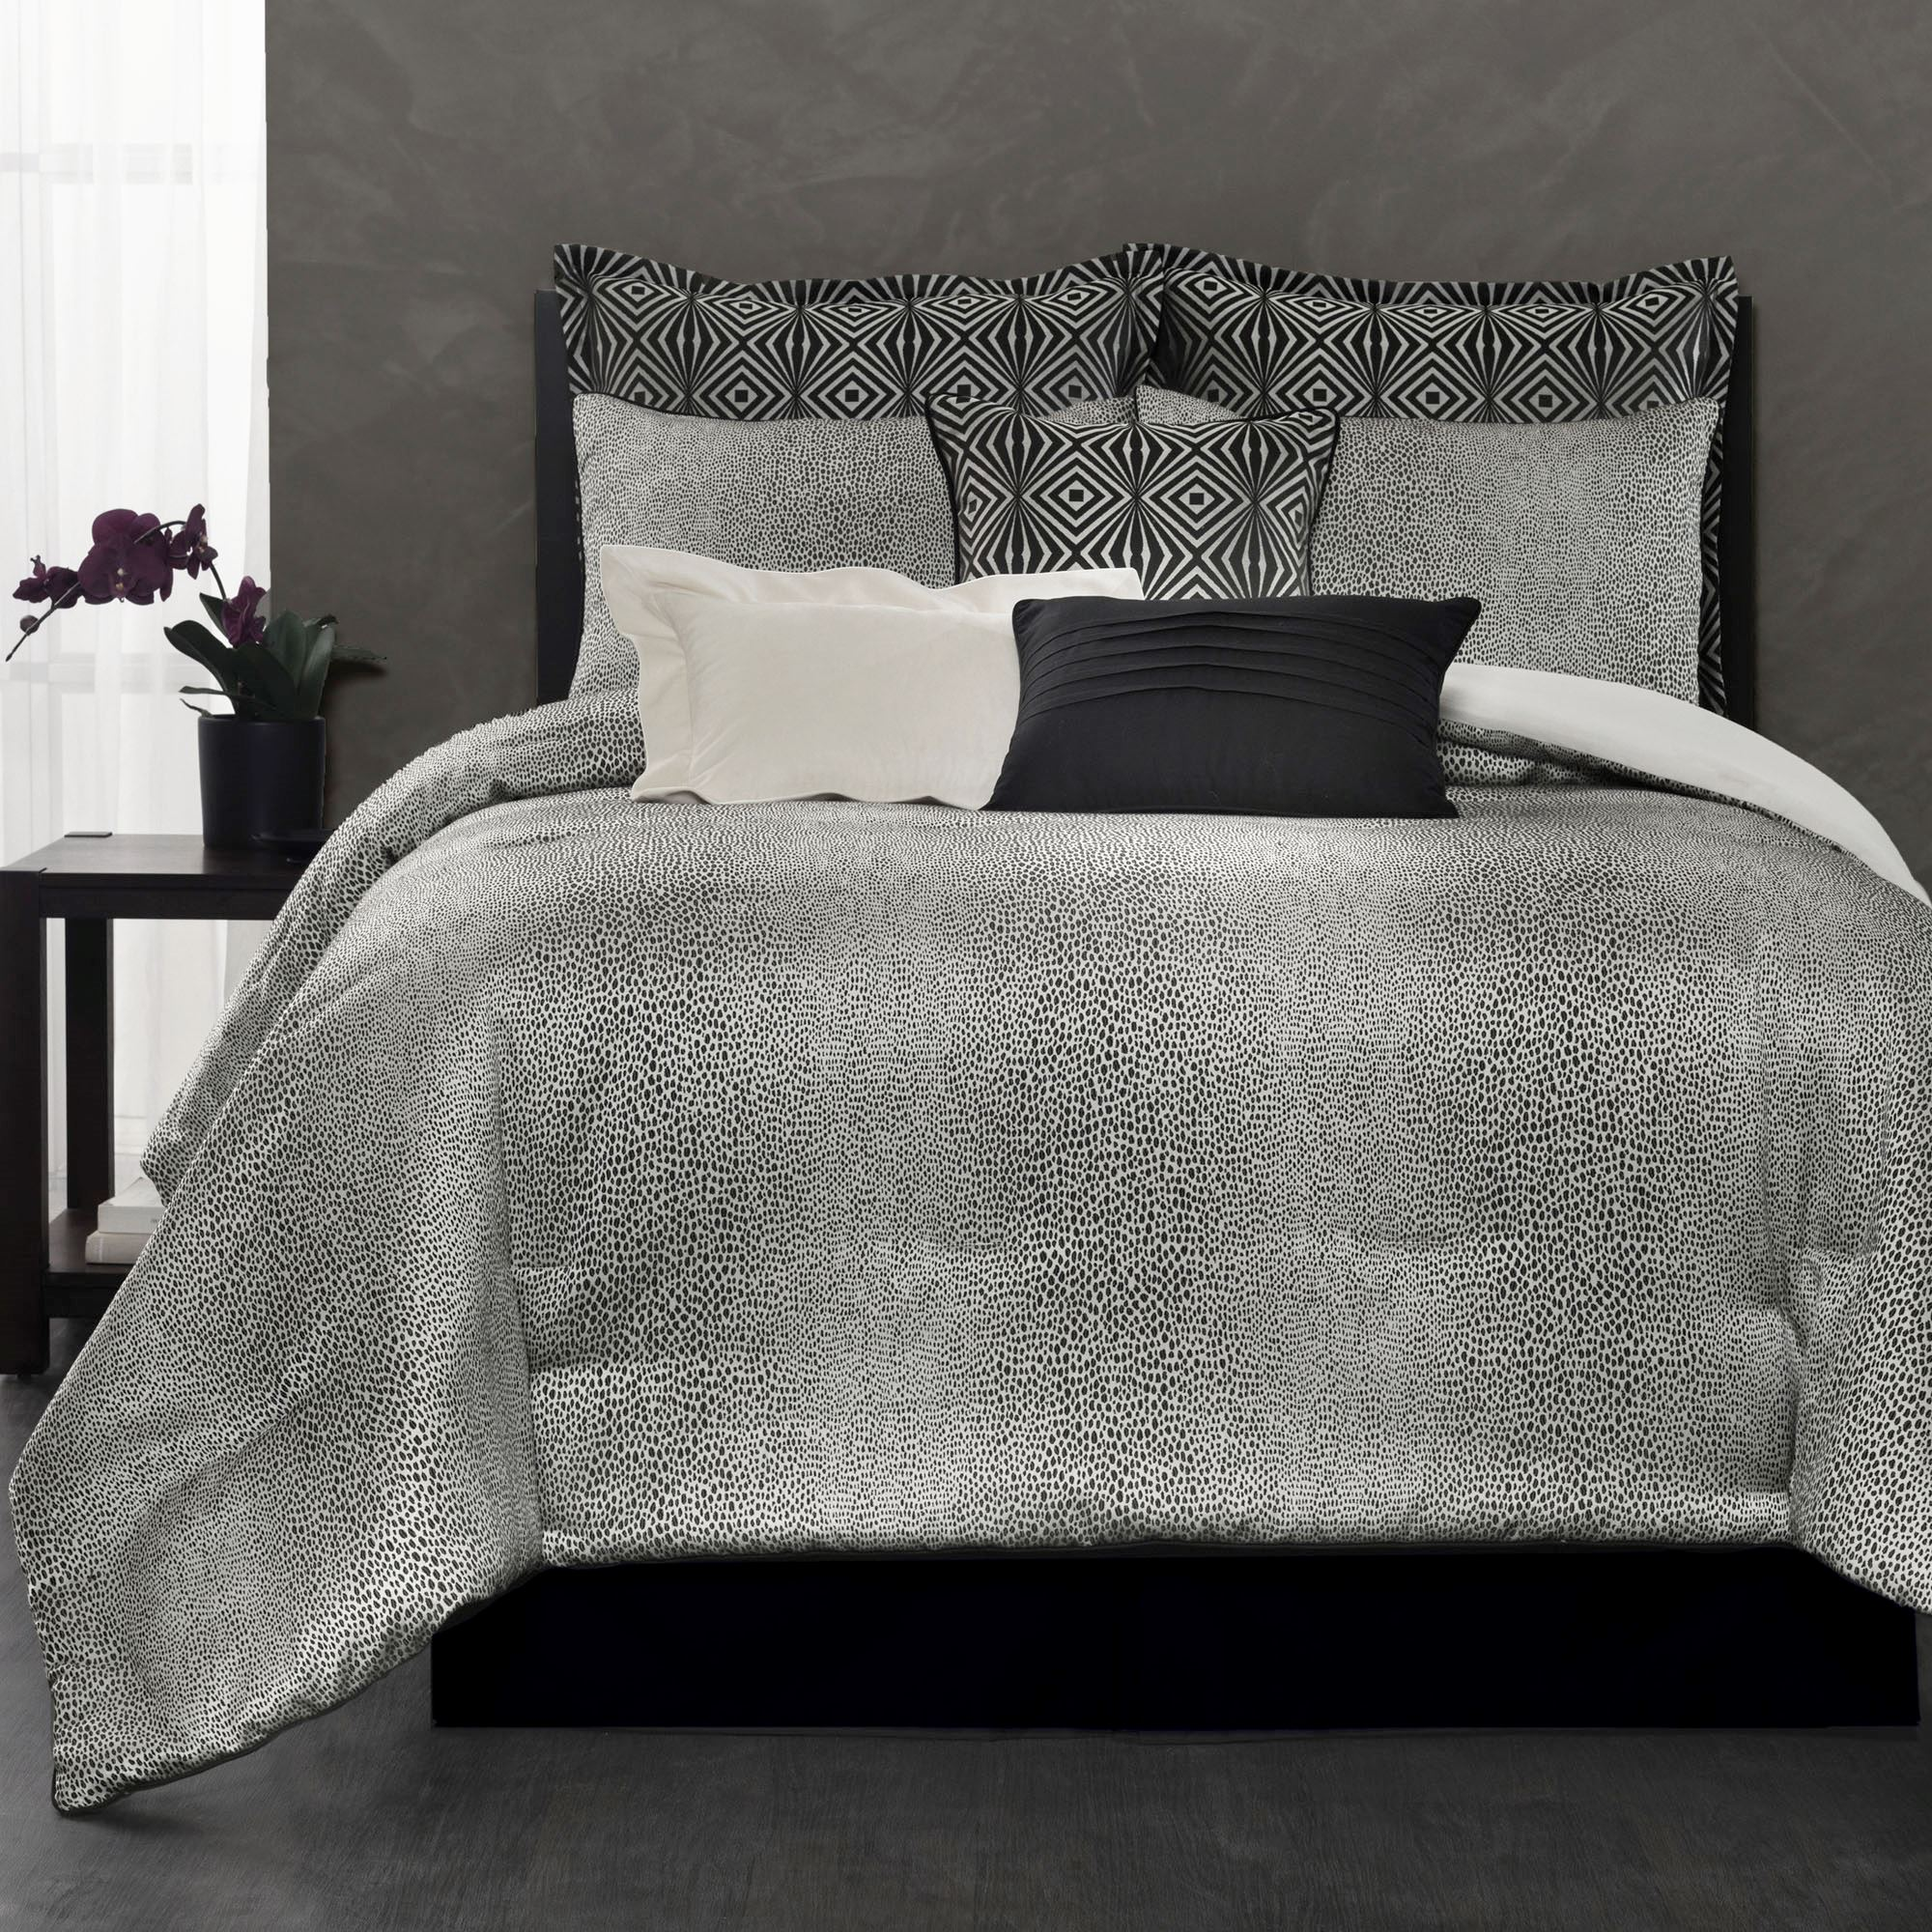 Avalon Ombre Black Leopard Print Comforter Bedding From Laundry By